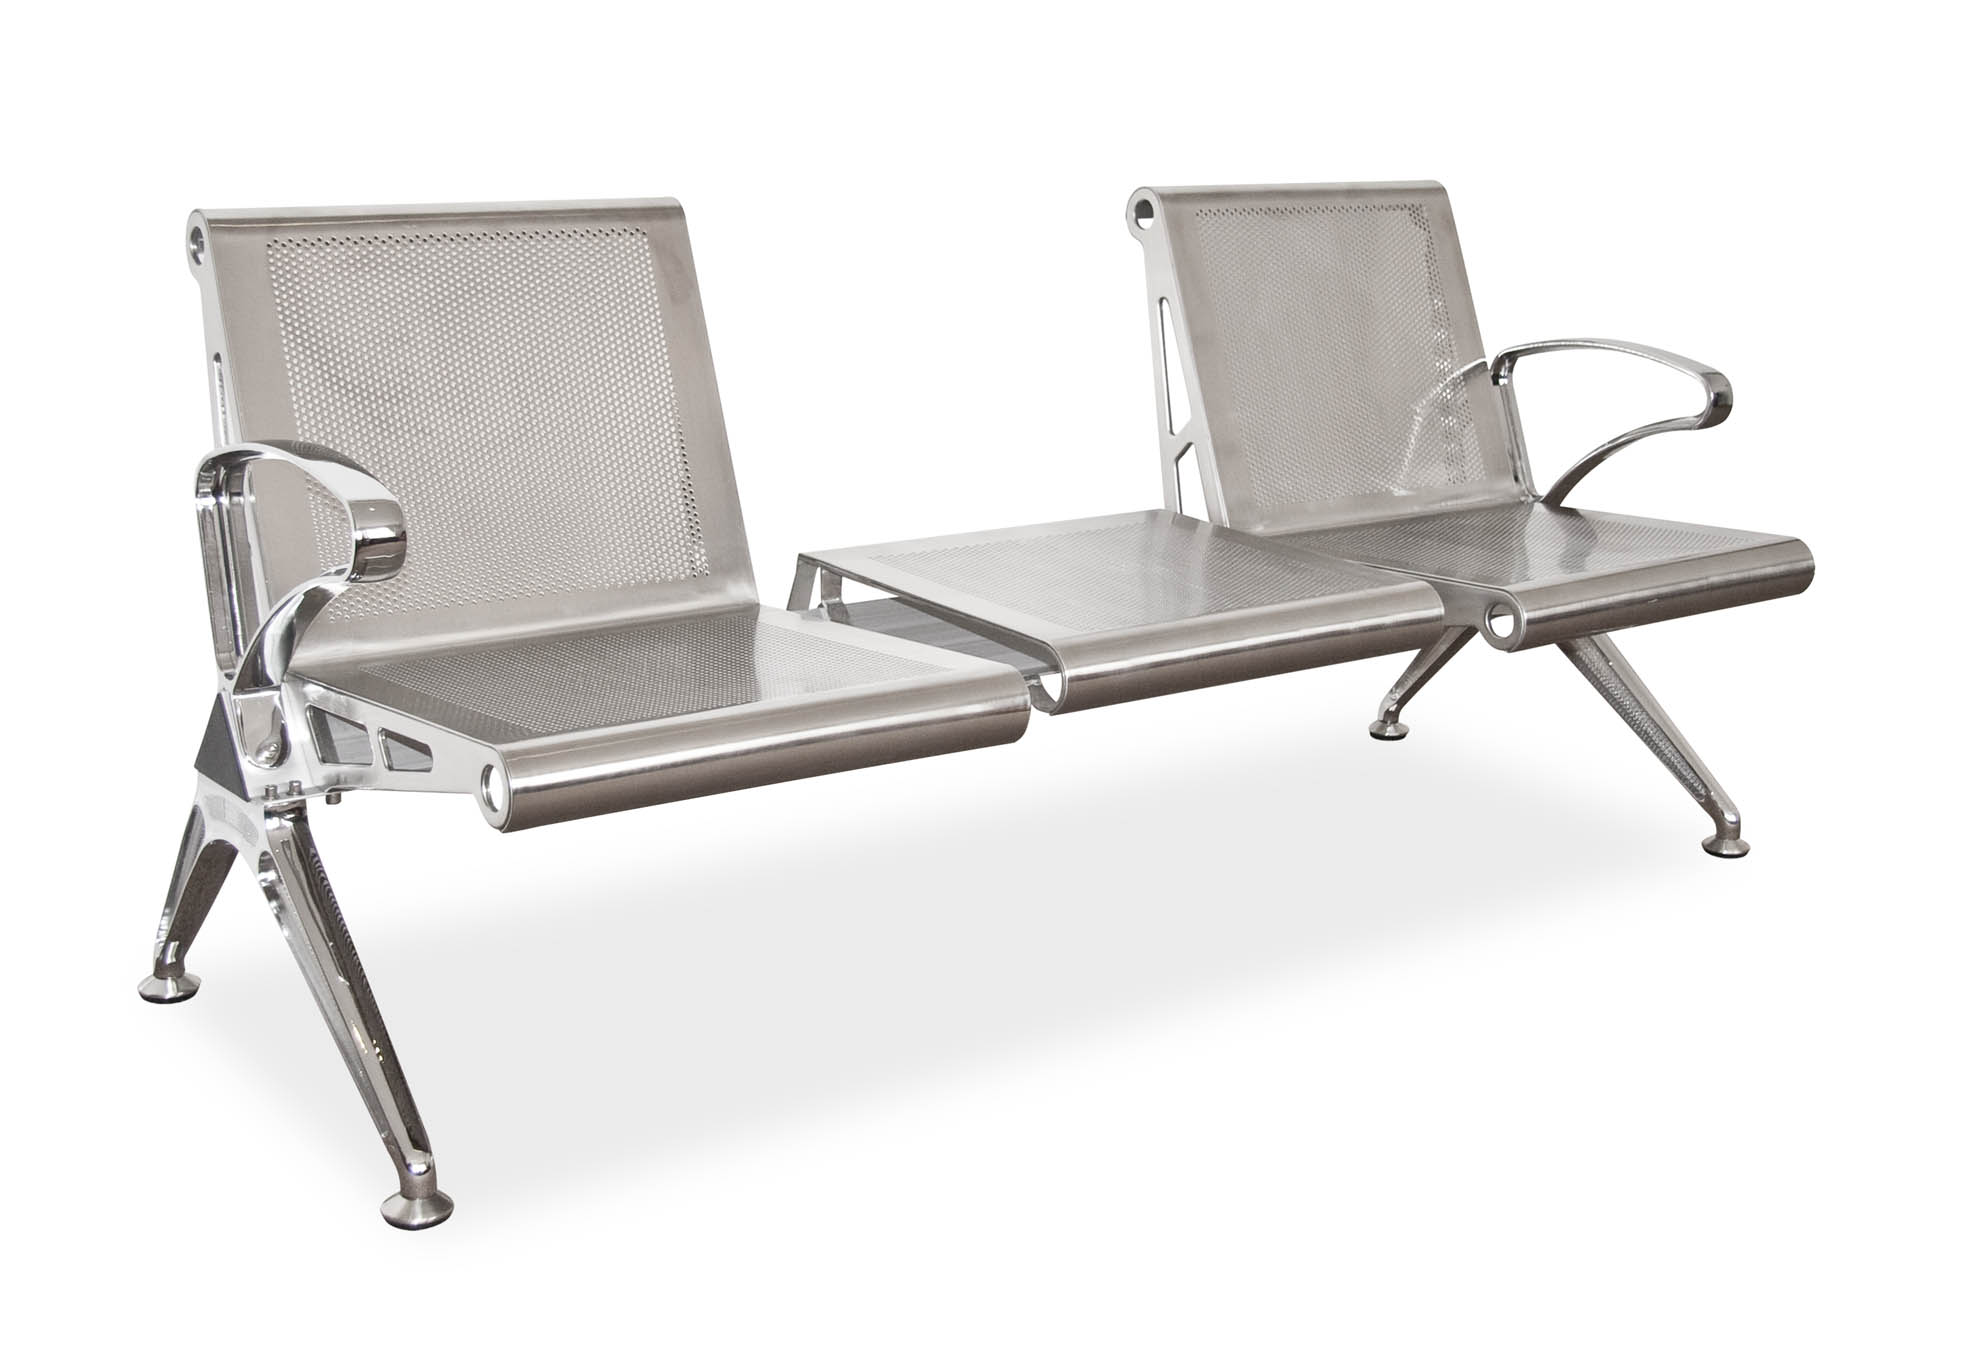 Stainless Steel Public seating